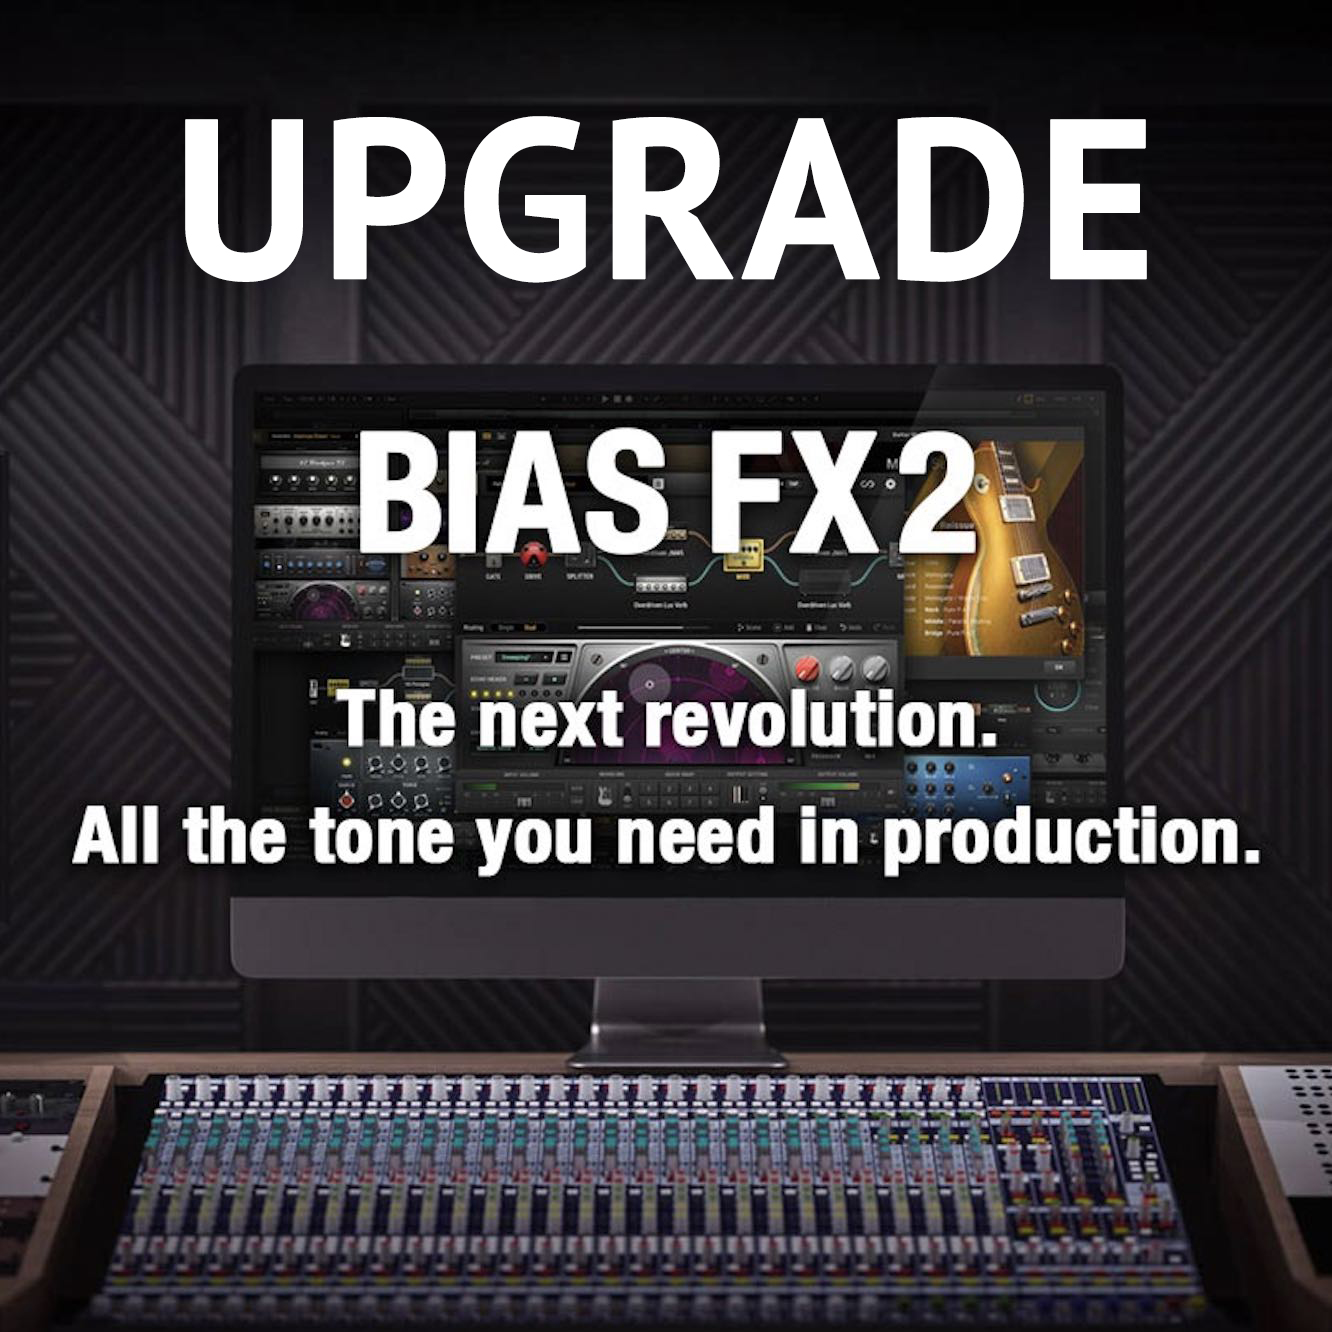 Upgrade From BIAS FX Standard to BIAS FX 2 Professional